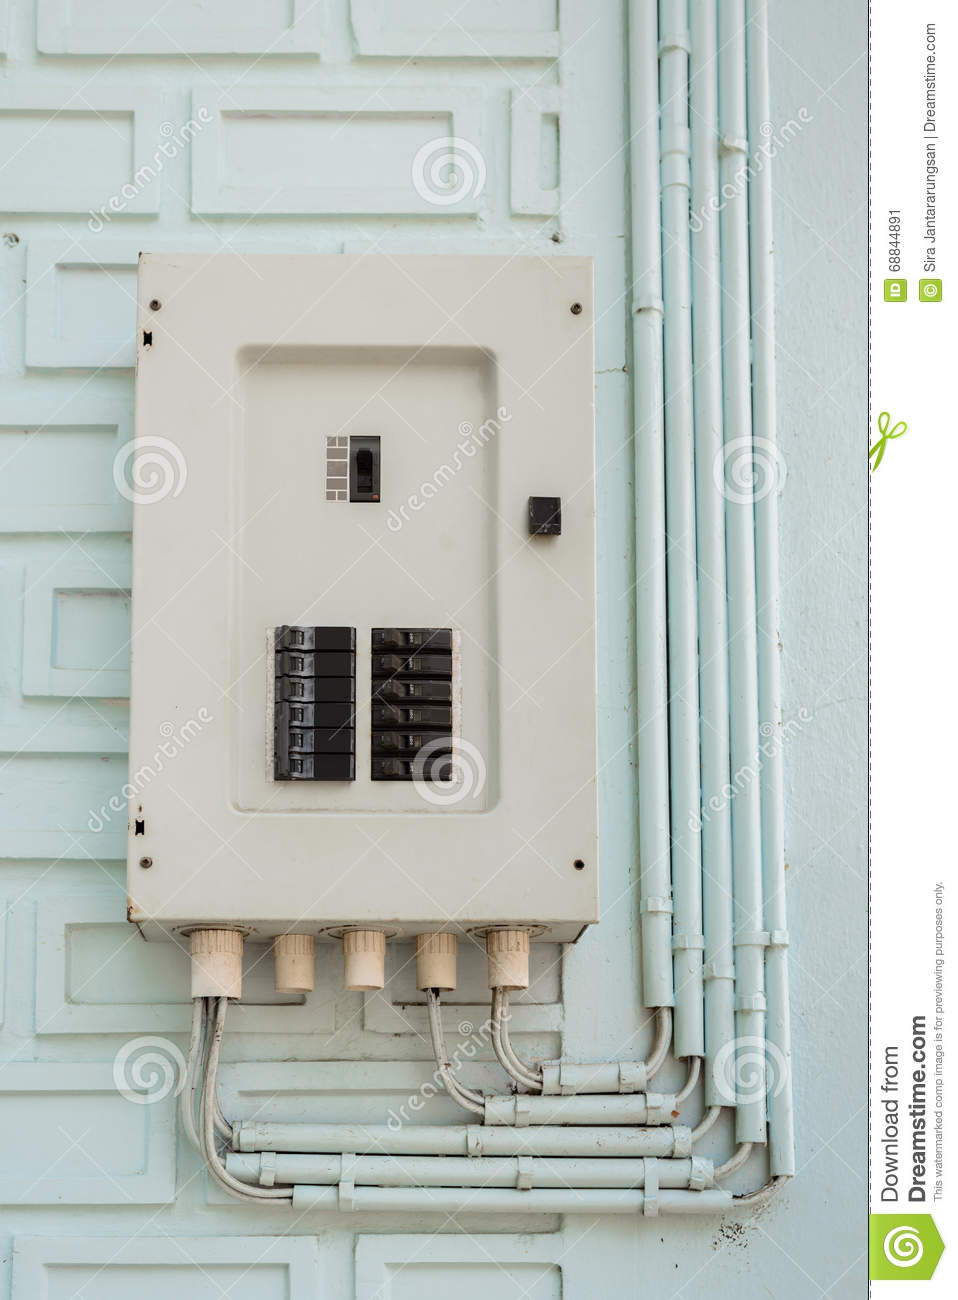 hight resolution of electric panel fuse box and power pipe line